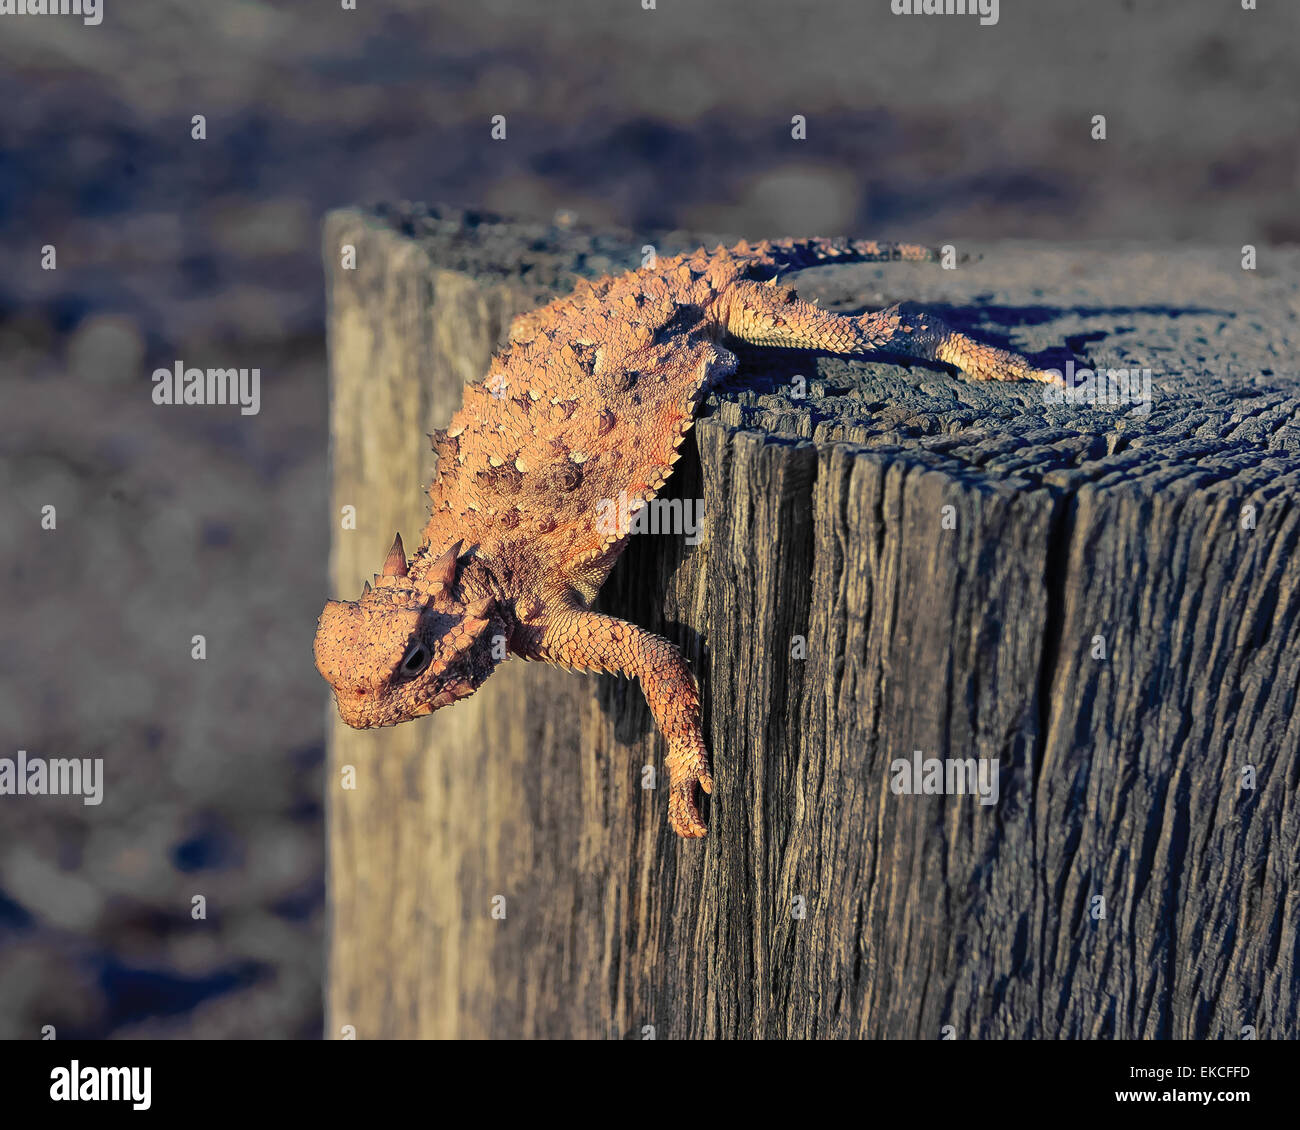 Horned Lizard crawling on a wooden post, Arizona, USA - Stock Image